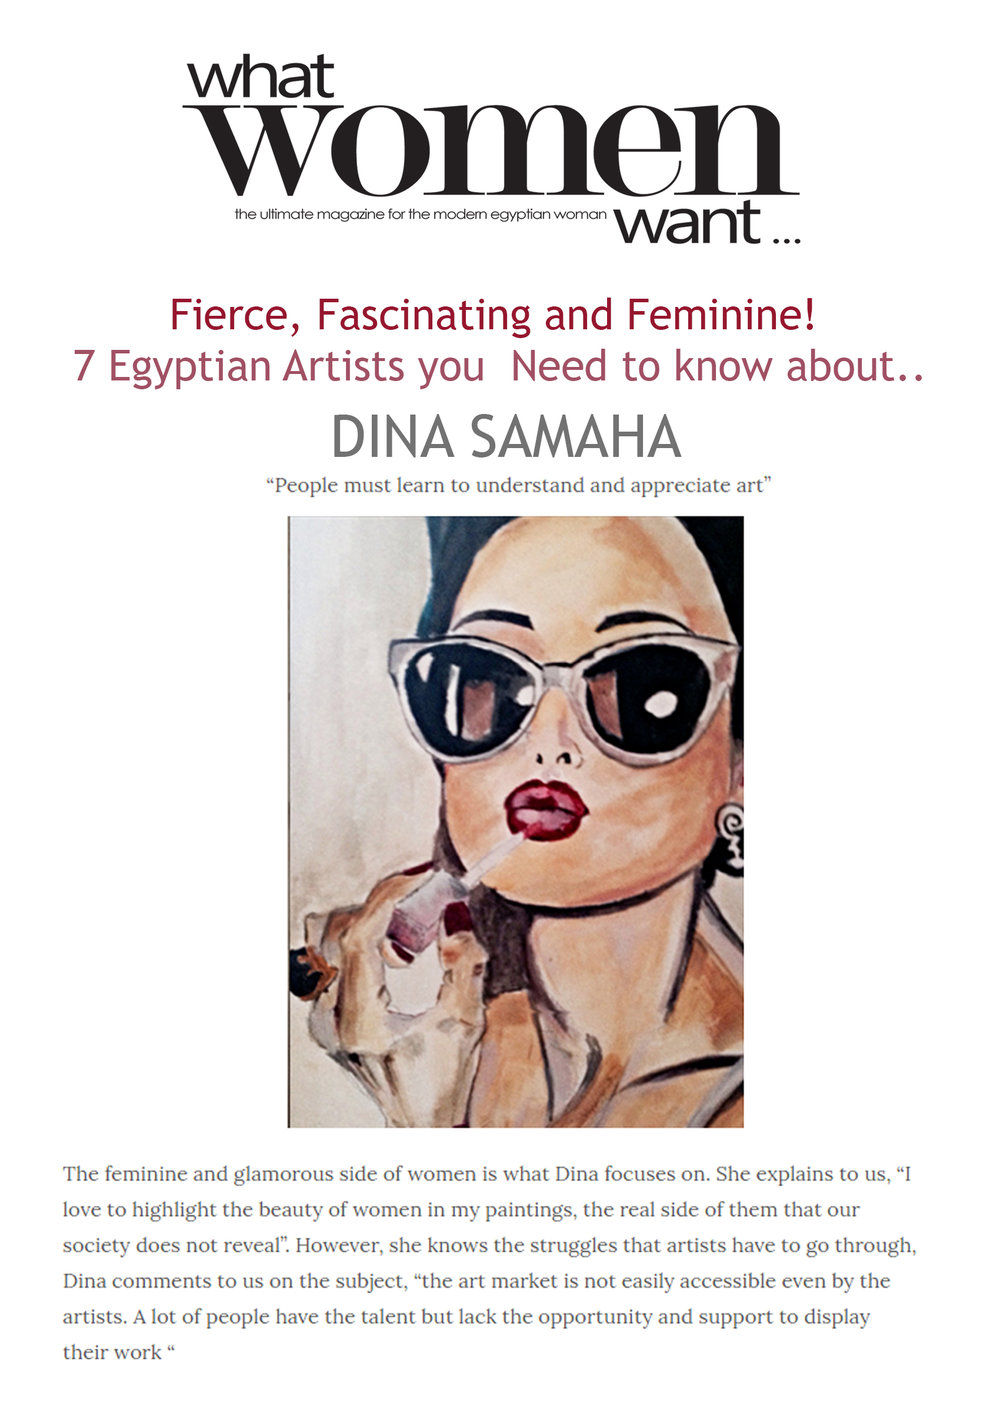 Fierce, Fascinating and Feminine: 7 Egyptian Artists you need to know about..  - So glad to be listed as one of the 7 artists featured in this article by What Women Want Magazine. Click on the link below to read the full article.What Women Want Magazine - September 2015 READ MORE >>